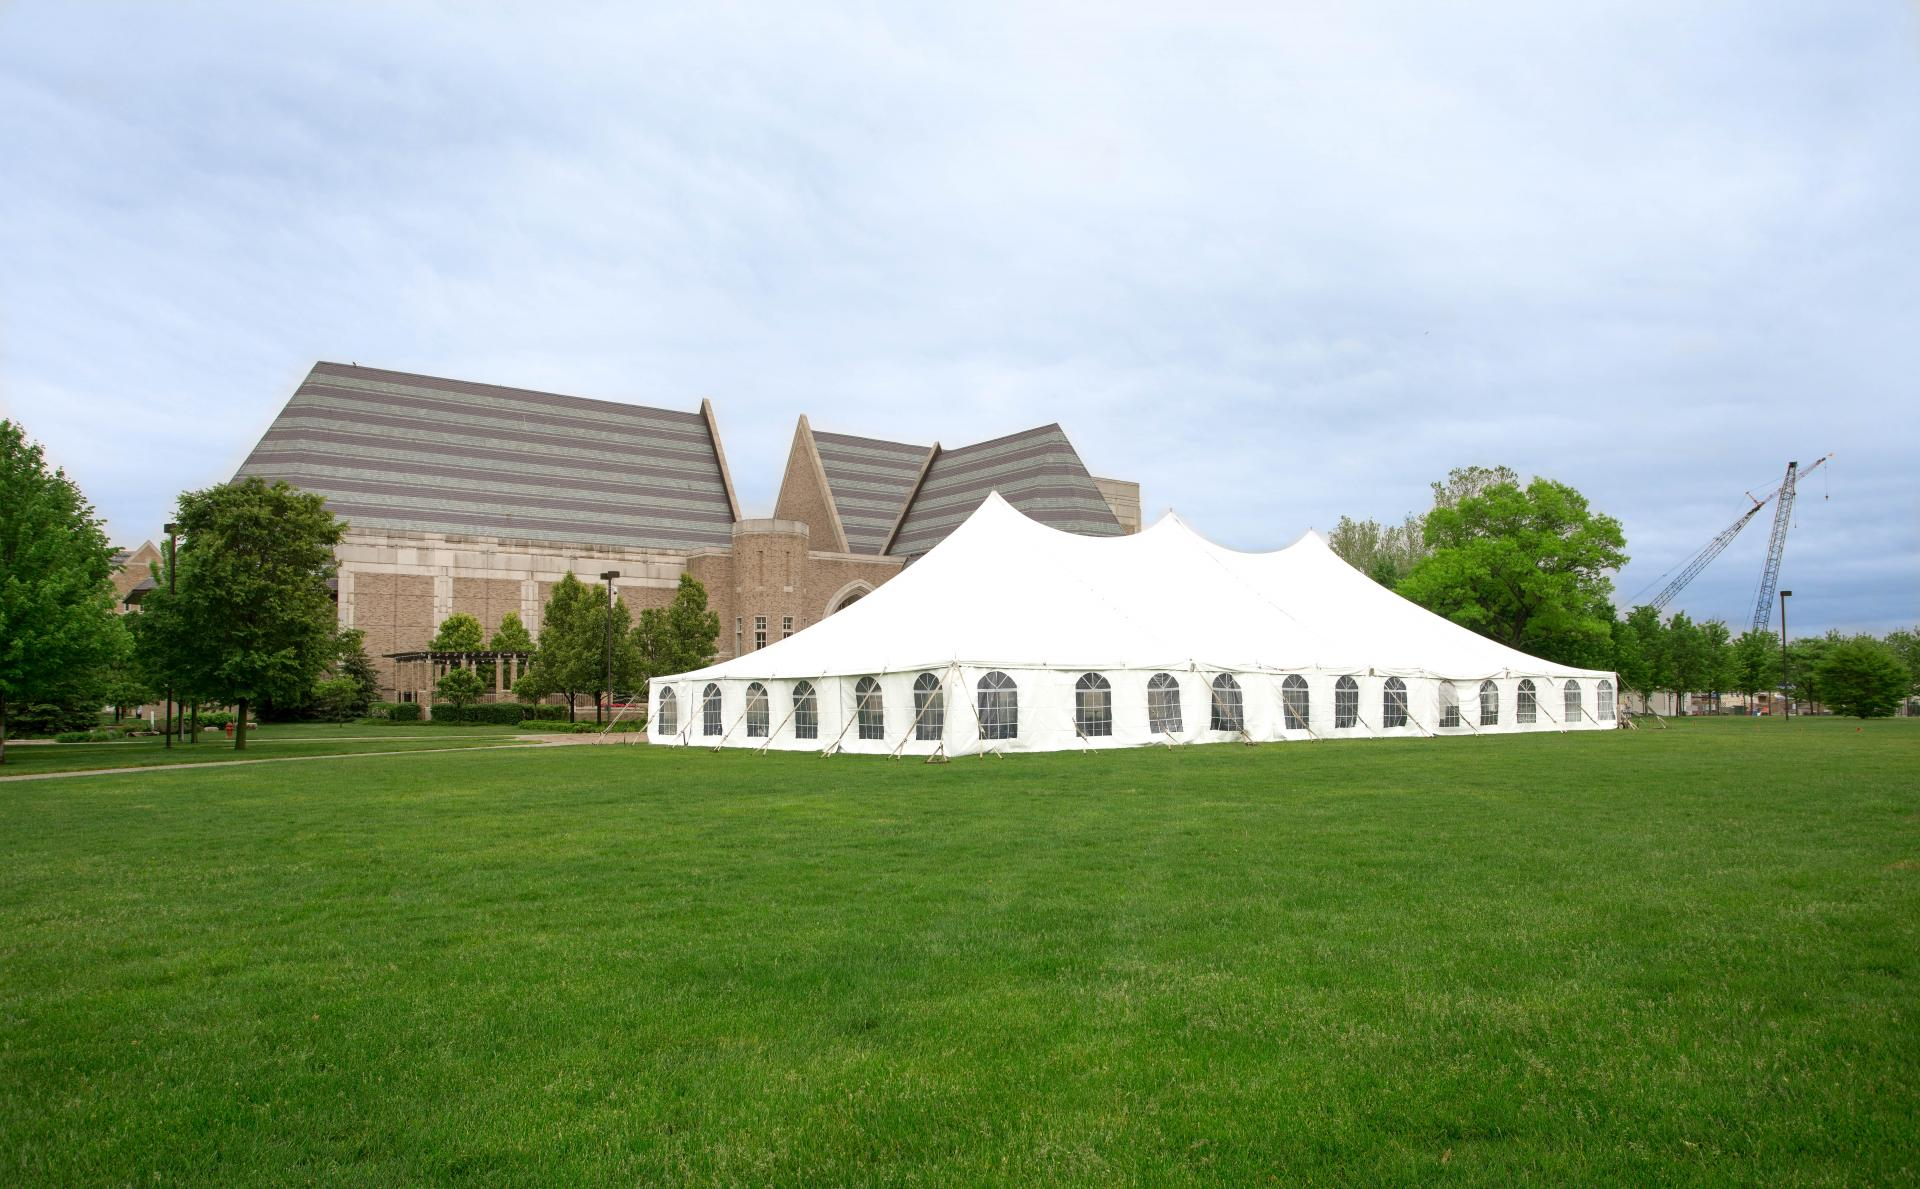 Pole Tent Set for Commencement At The University Of Notre Dame